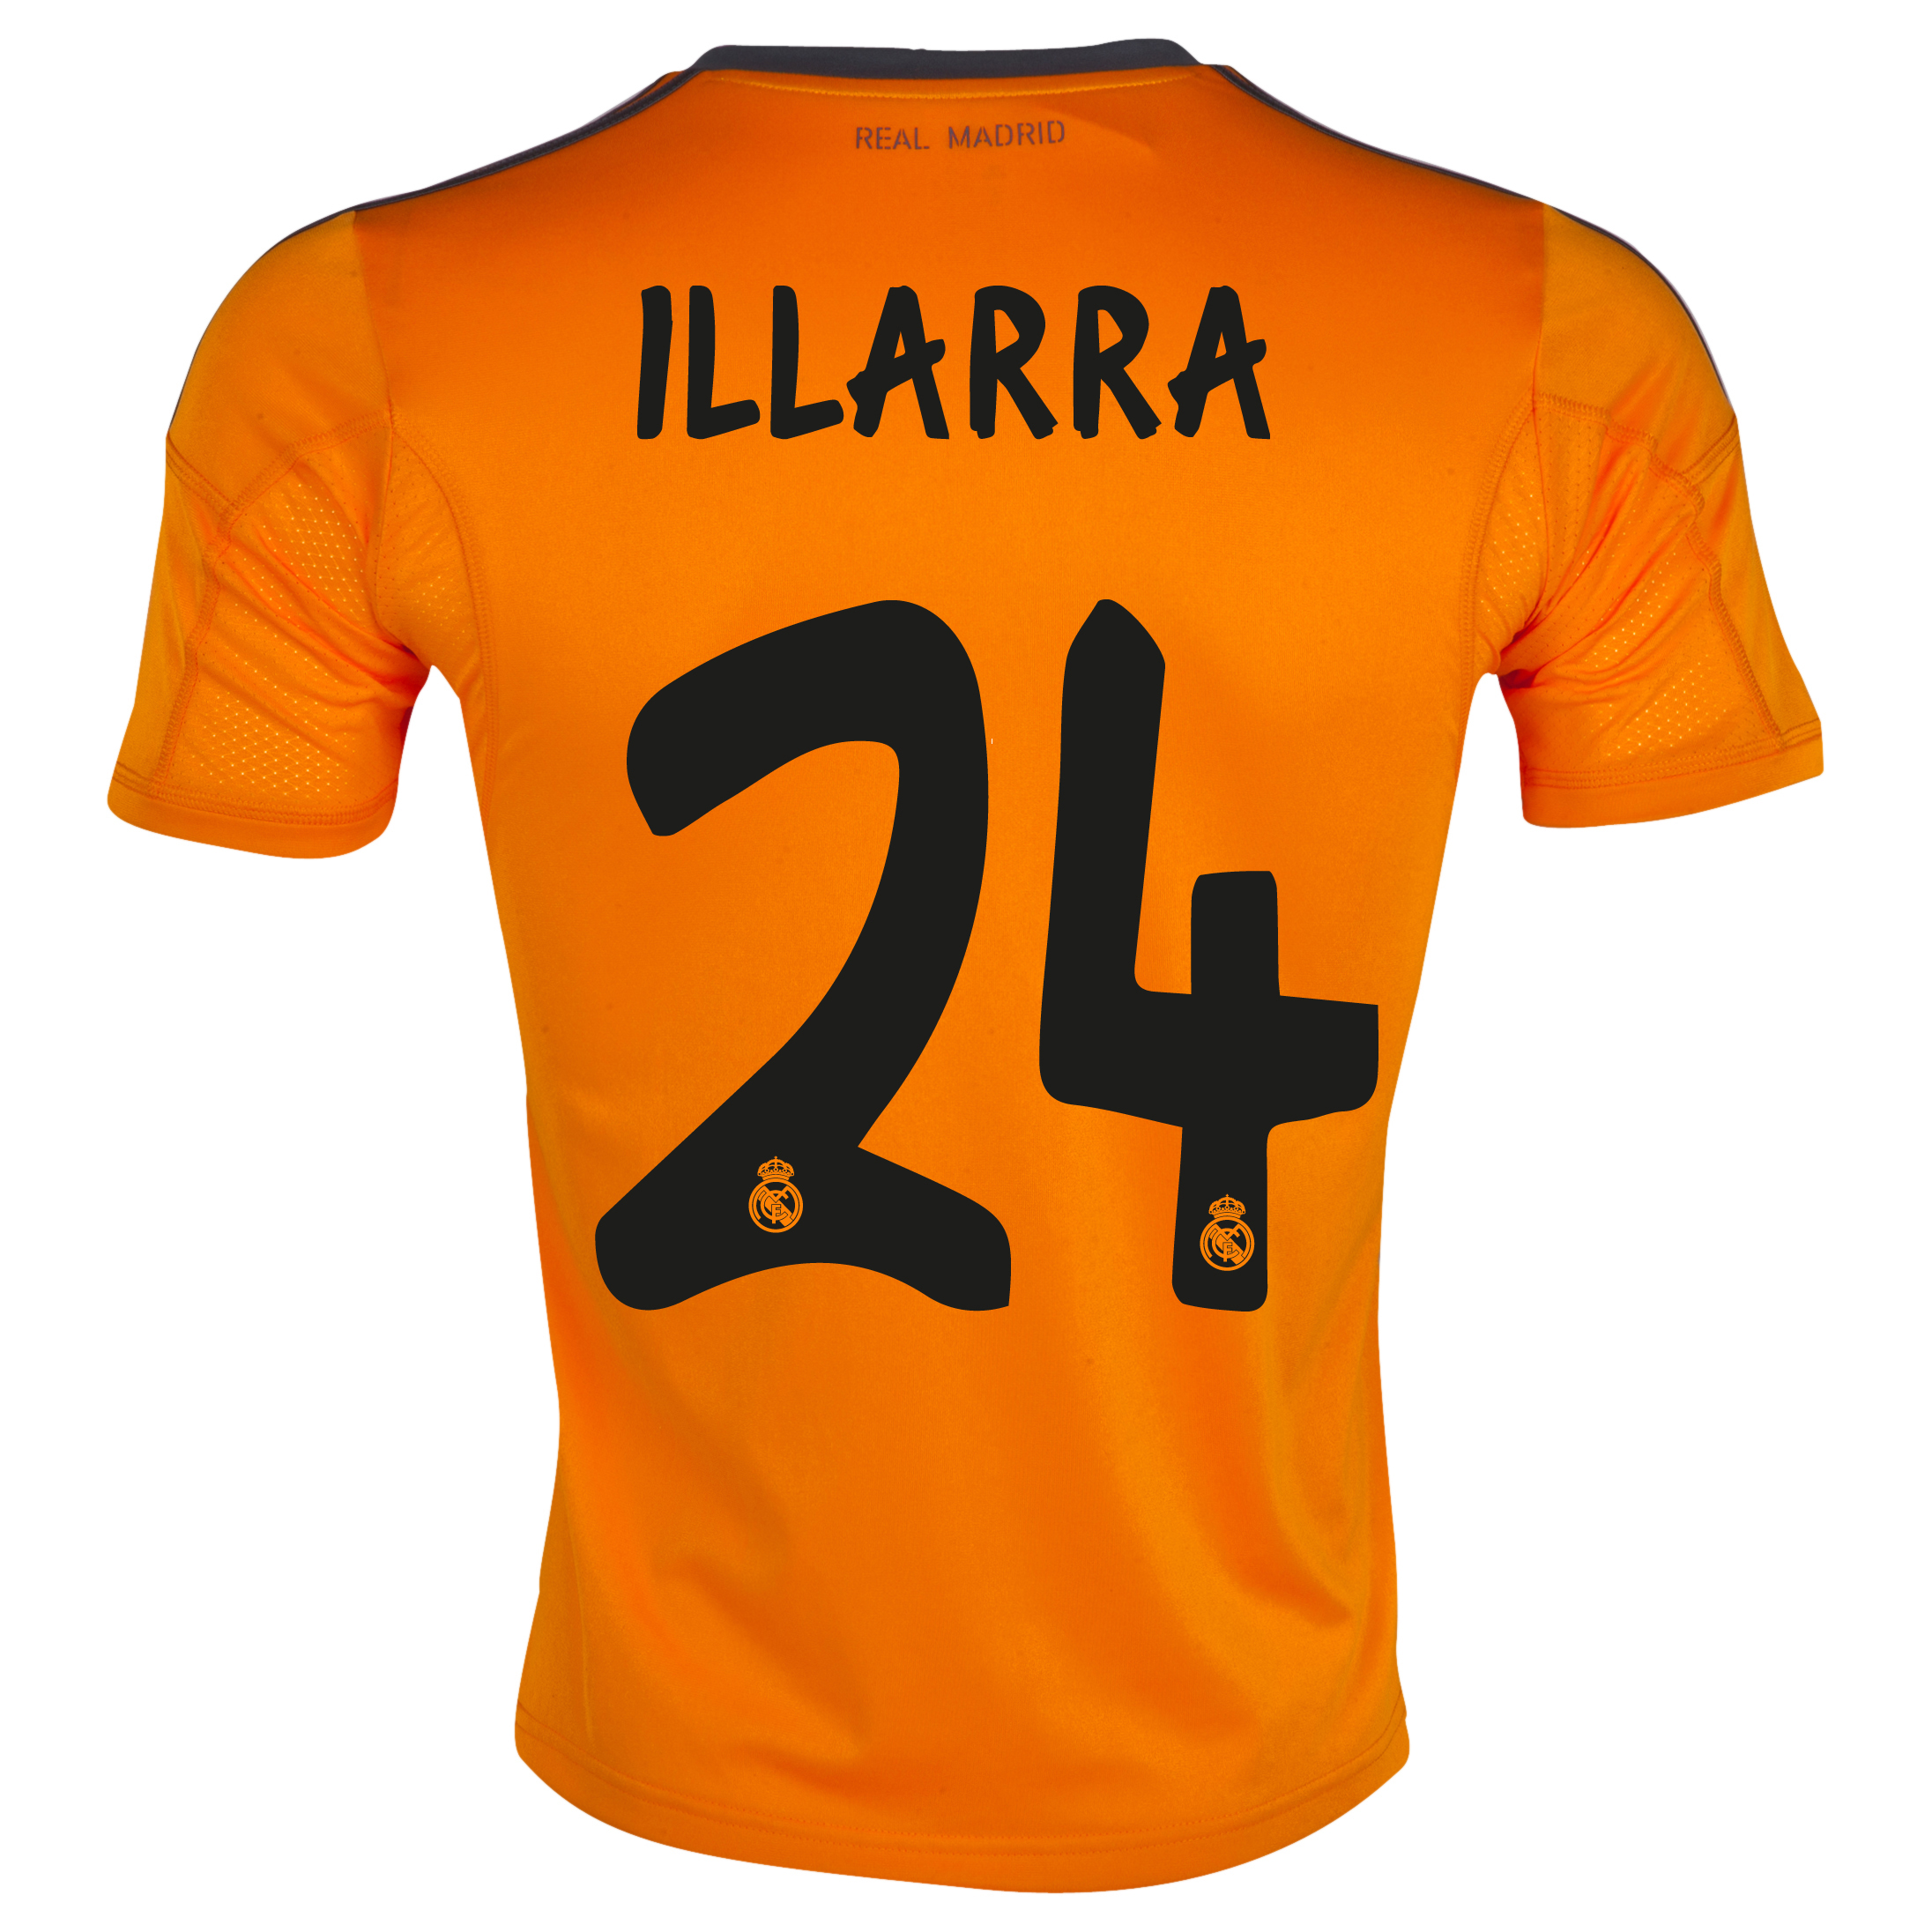 Real Madrid Third Shirt 2013/14 with Illarra 24 printing